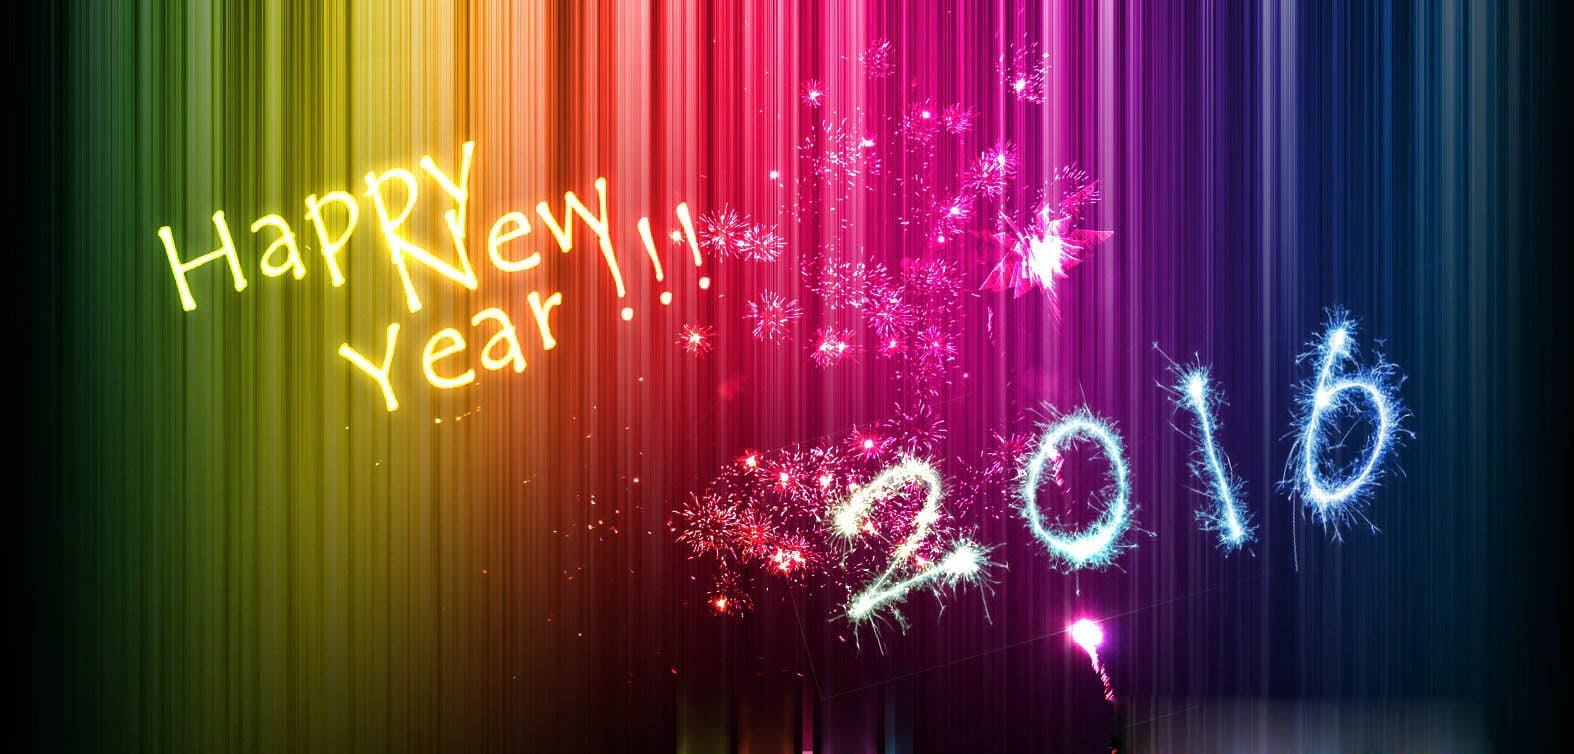 Happy New Year Beth Hart Official Web Site